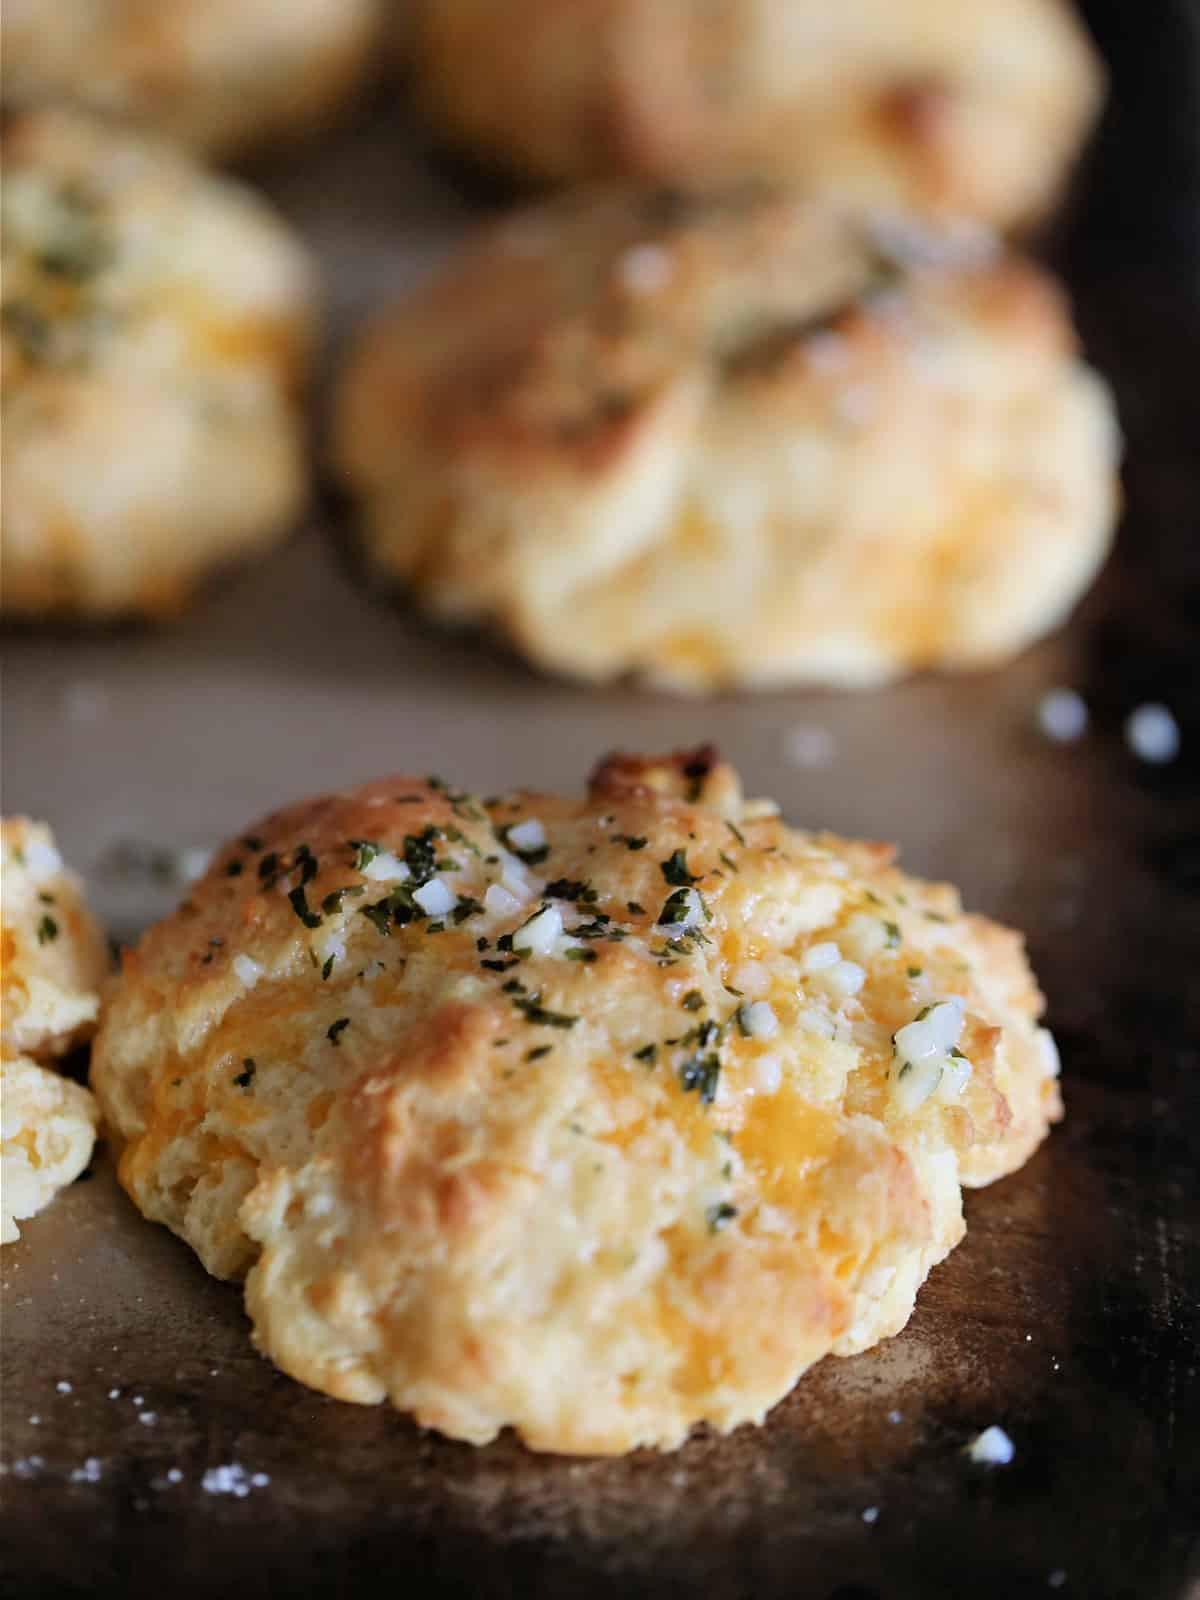 Cheddar Bay Biscuit clone on a baking sheet